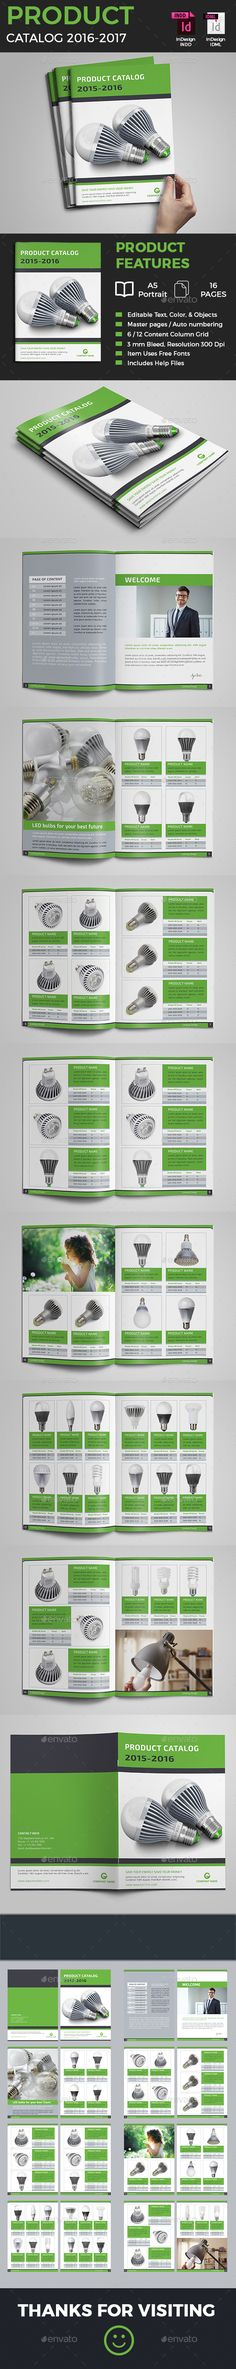 A5 Product Catalog  — InDesign Template #business #indesign template • Download ➝ https://graphicriver.net/item/a5-product-catalog/18561625?ref=pxcr